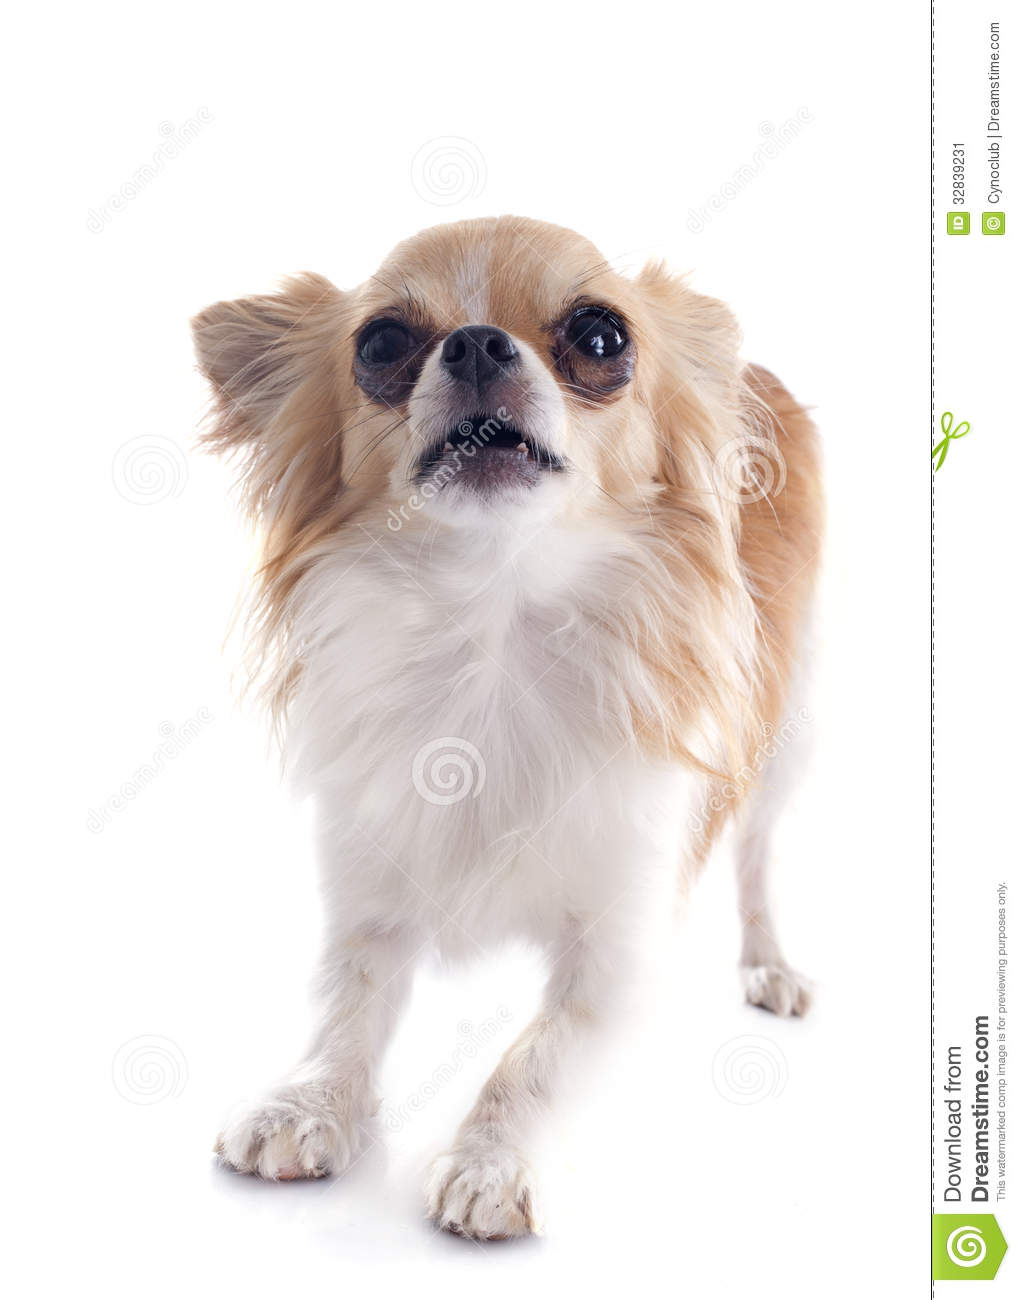 how to stop a chihuahua from barking